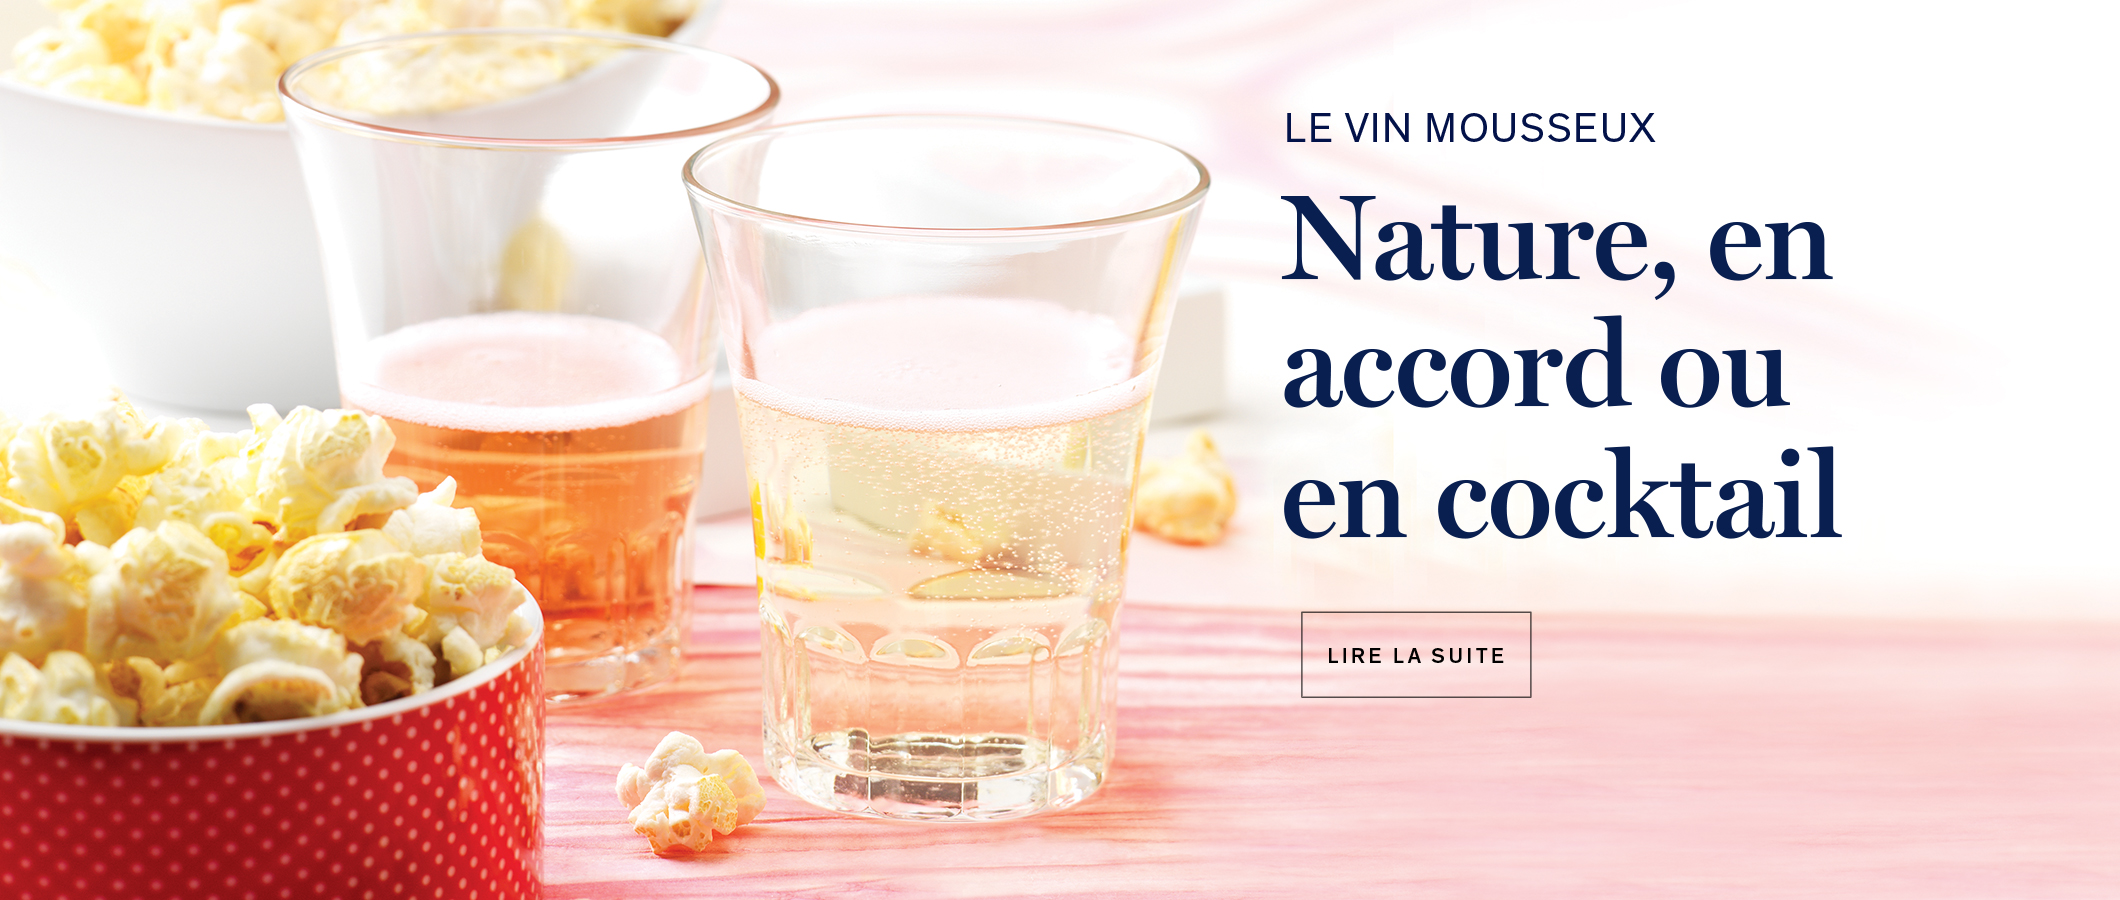 Le vin mousseux Nature, en accord ou en cocktail LIRE LA SUITE